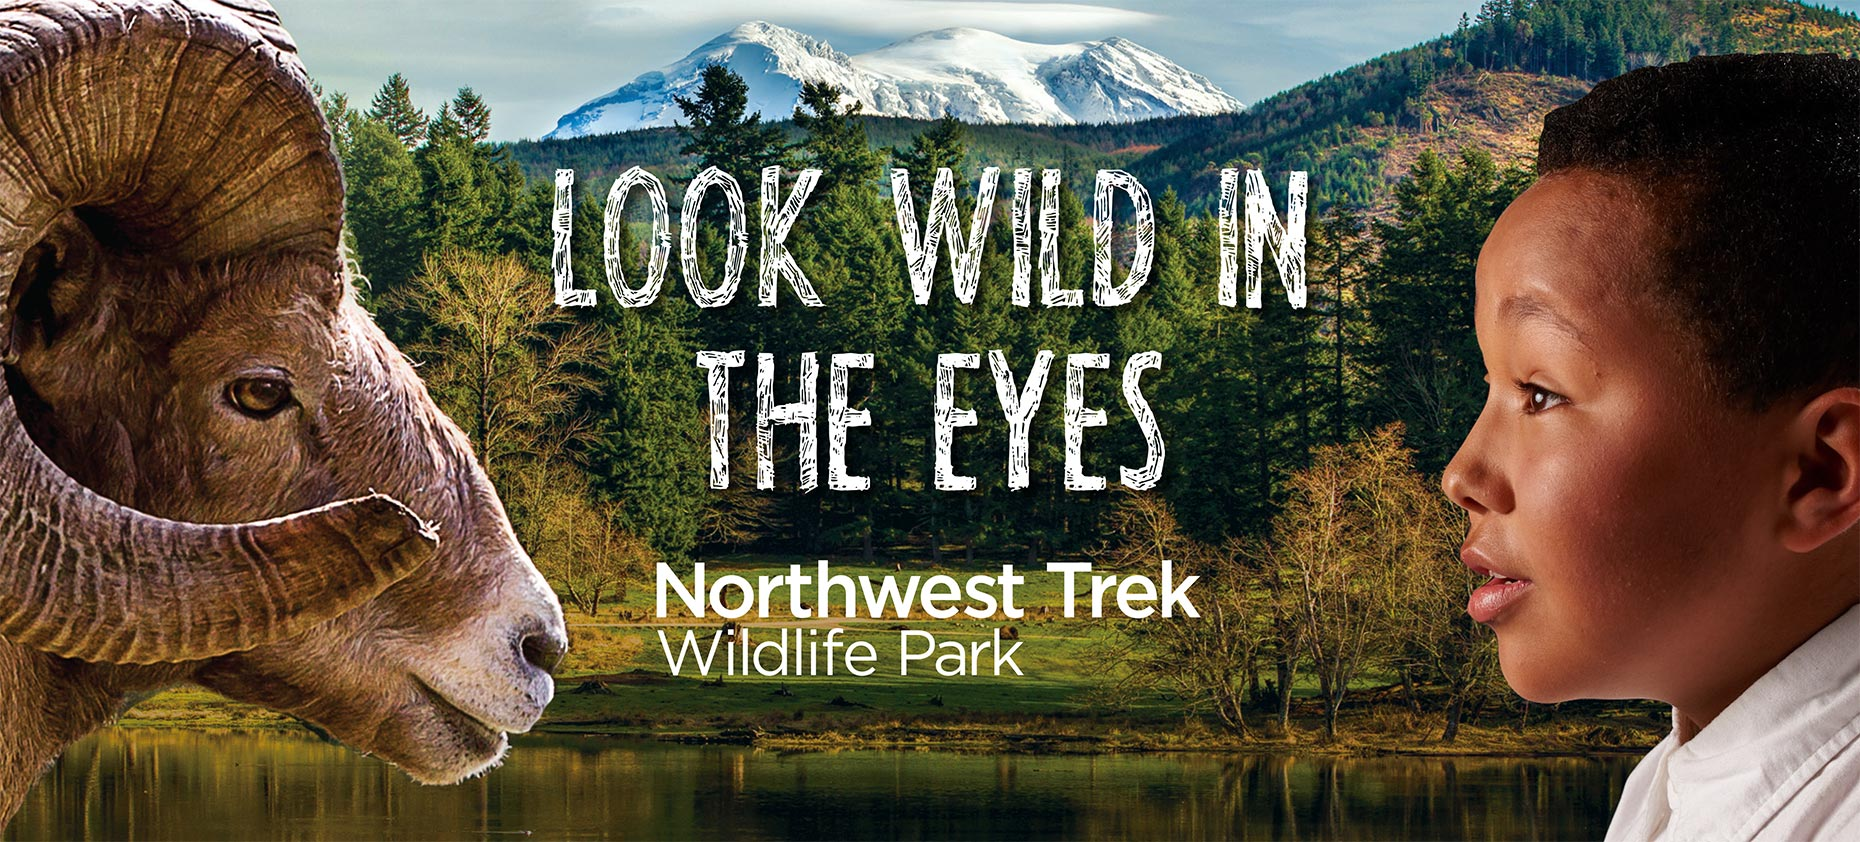 Tear sheet from Northwest Trek advertising campaign